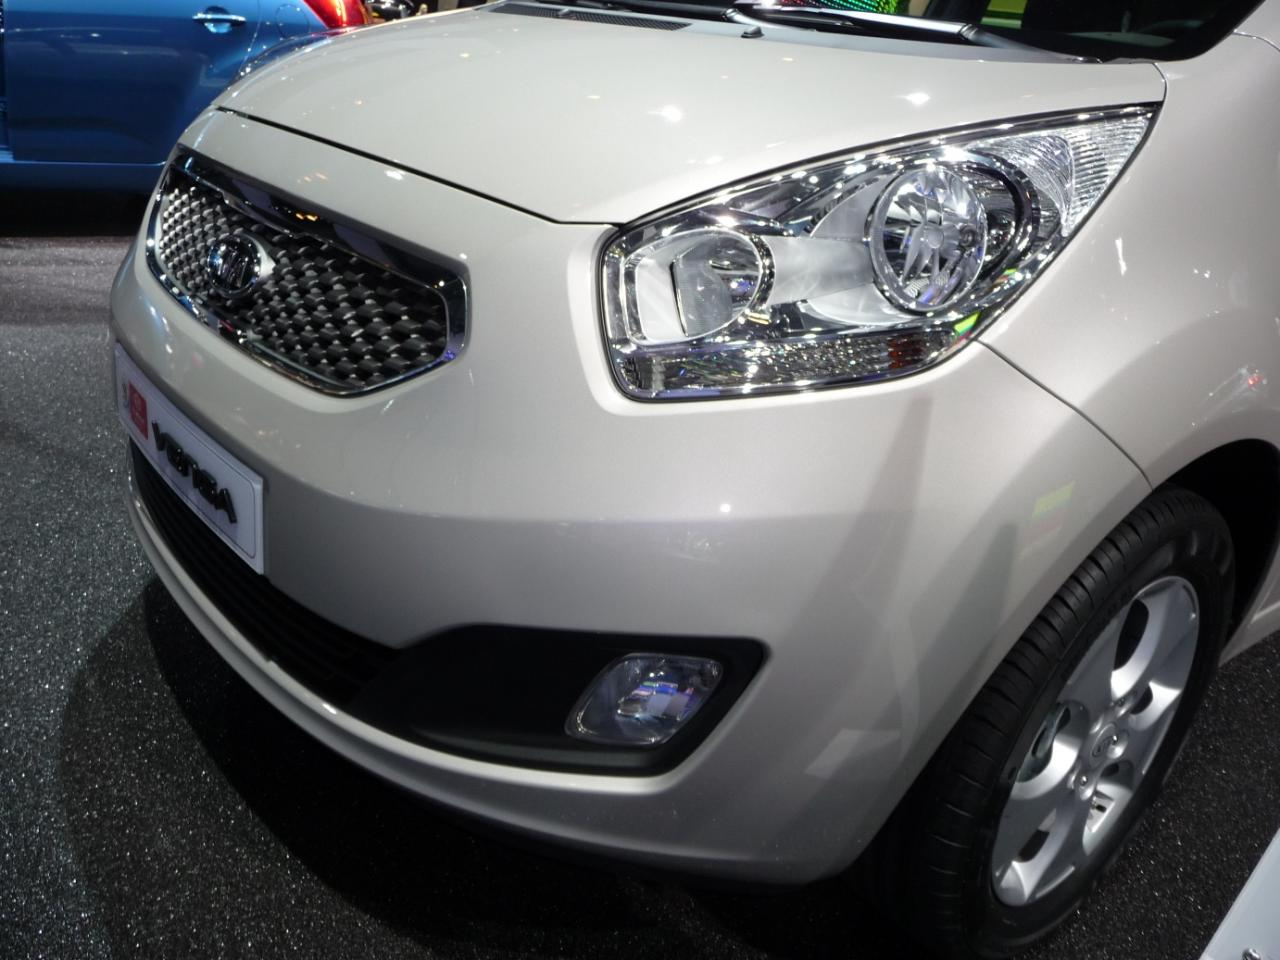 Kia Venga 2012 photo - 3